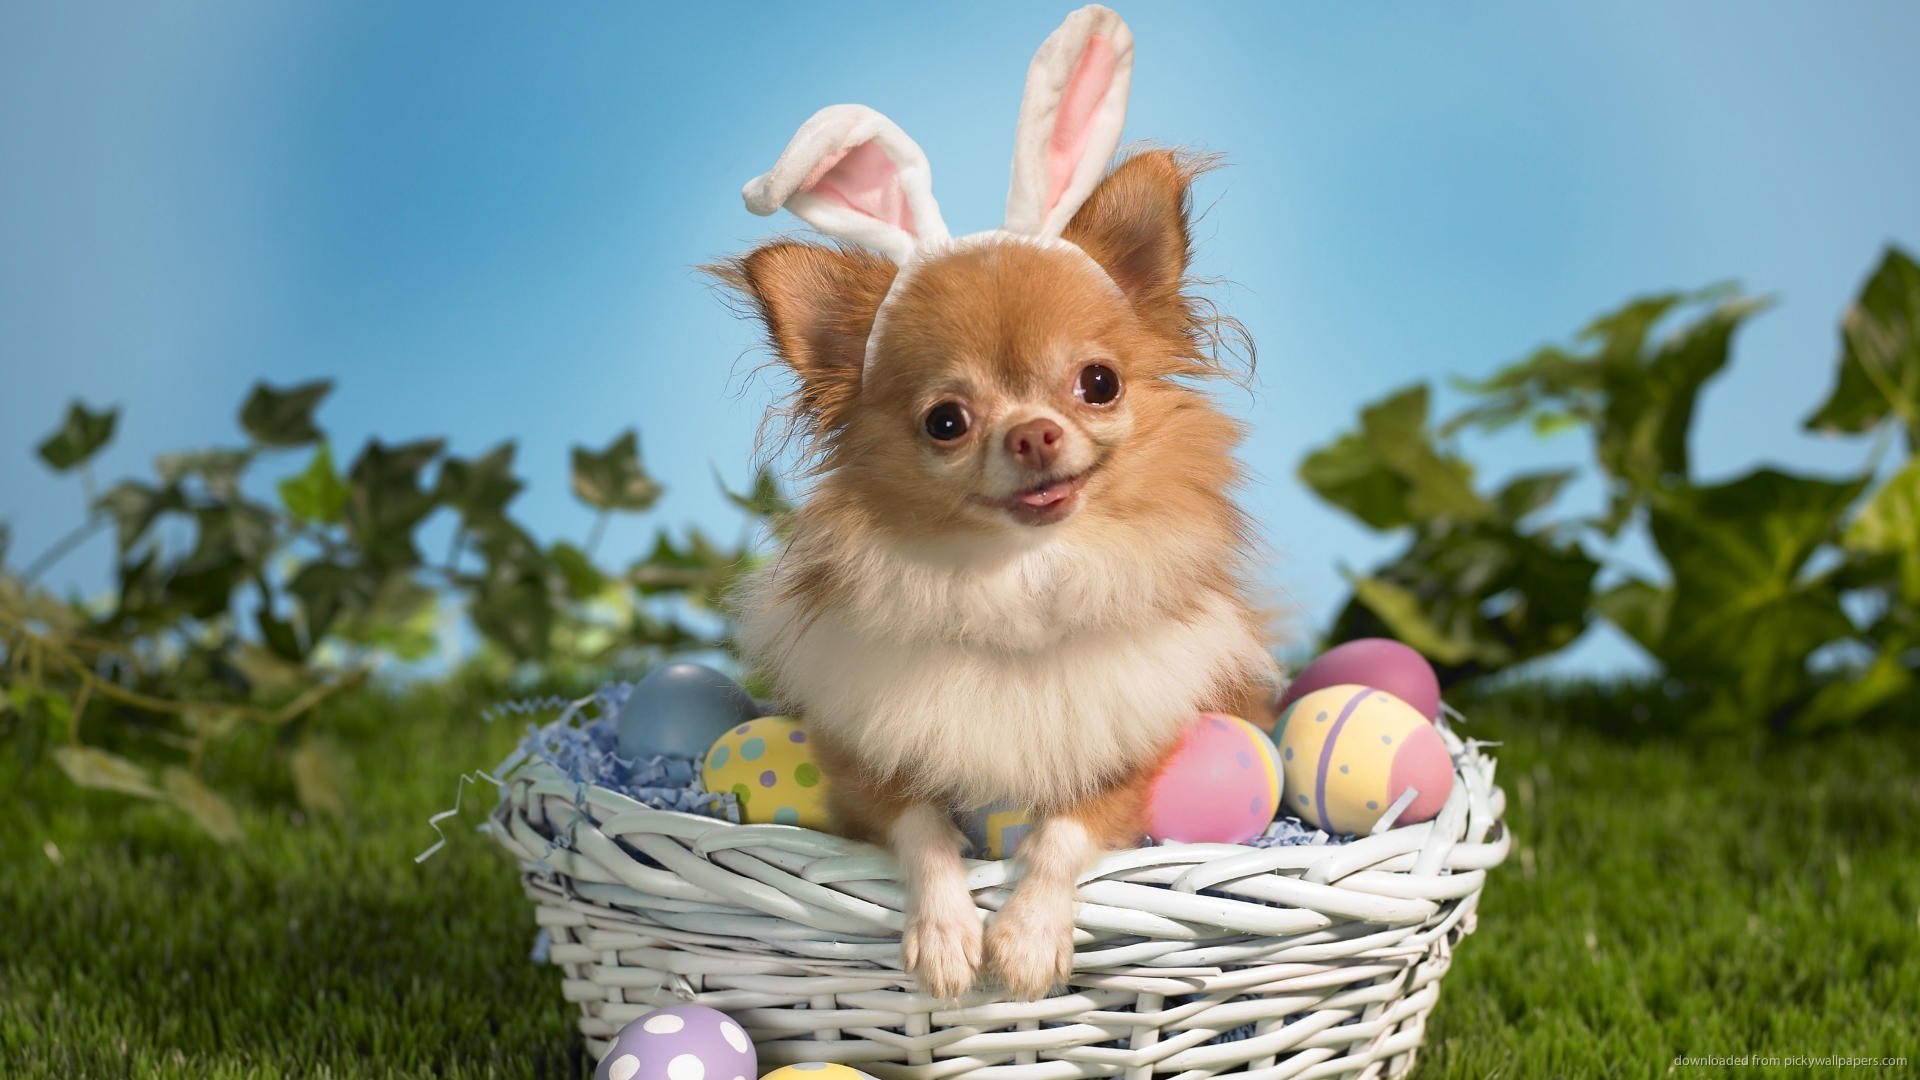 Res: 1920x1080, Easter Chihuahua portrait photo